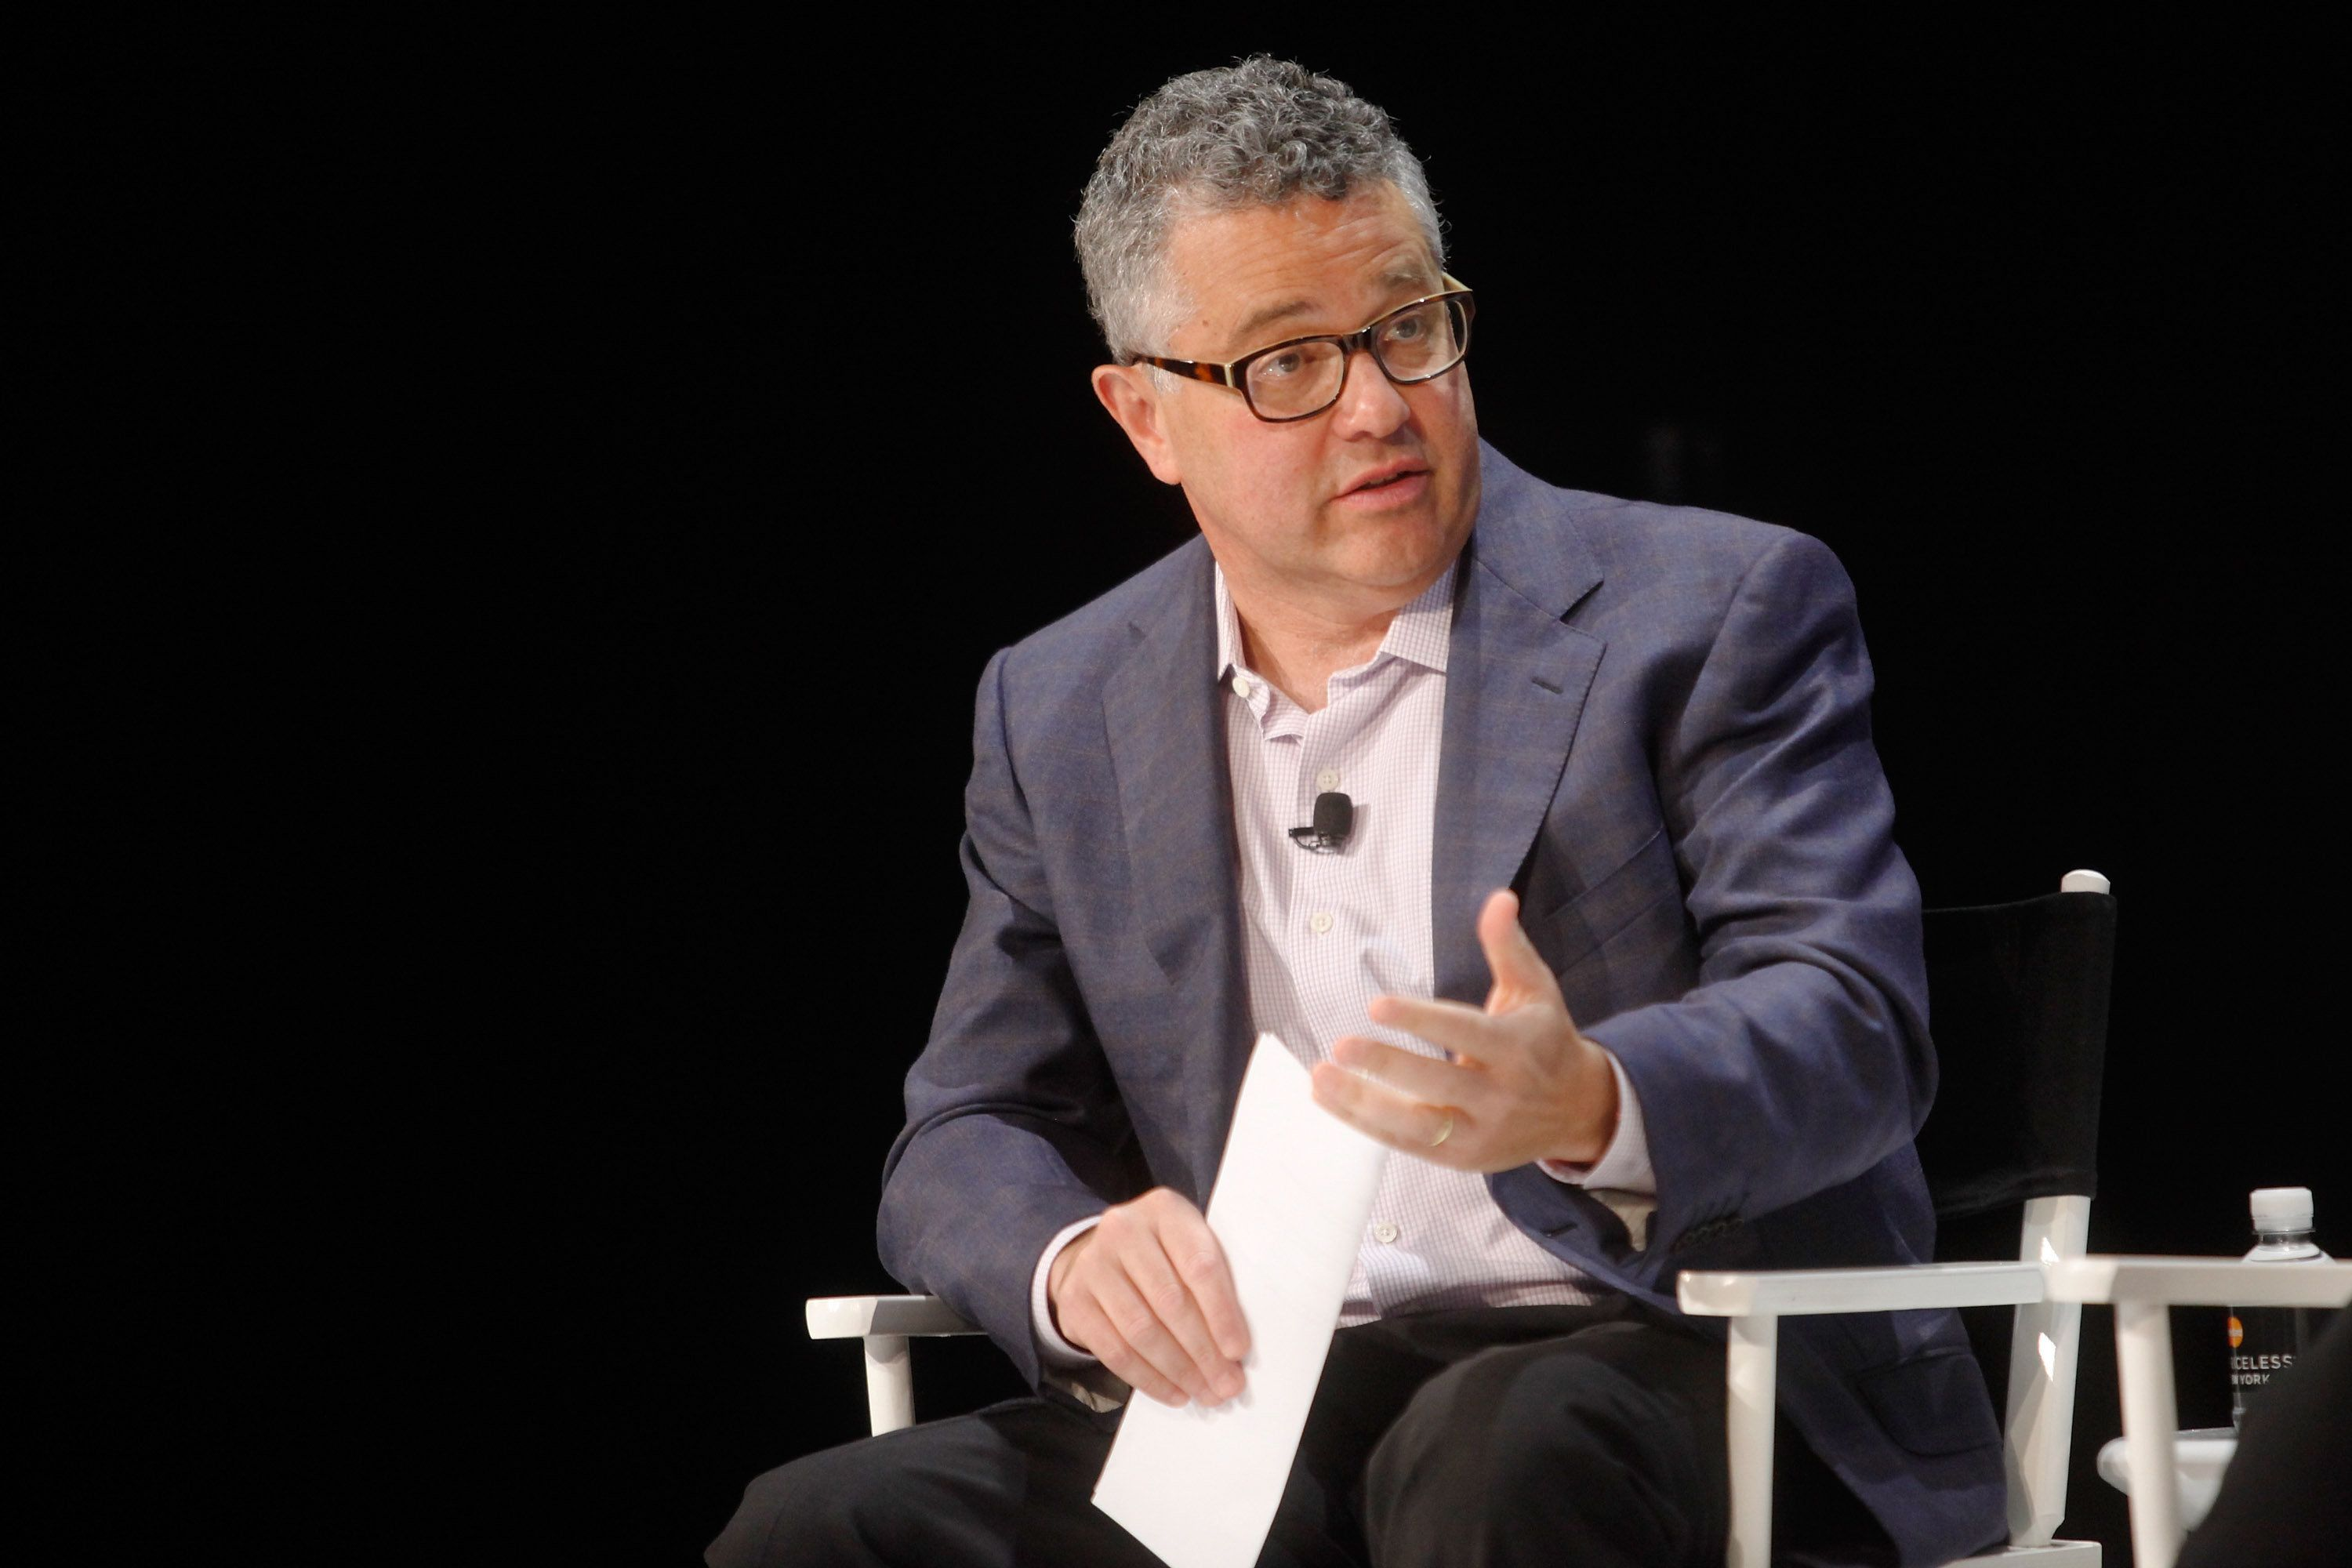 NEW YORK, NY - OCTOBER 11:  Moderator Jeffrey Toobin participates in a panel discussion during the New Yorker Festival at Acura at SIR Stage37 on October 11, 2014 in New York City.  (Photo by Thos Robinson/Getty Images for The New Yorker Festival)